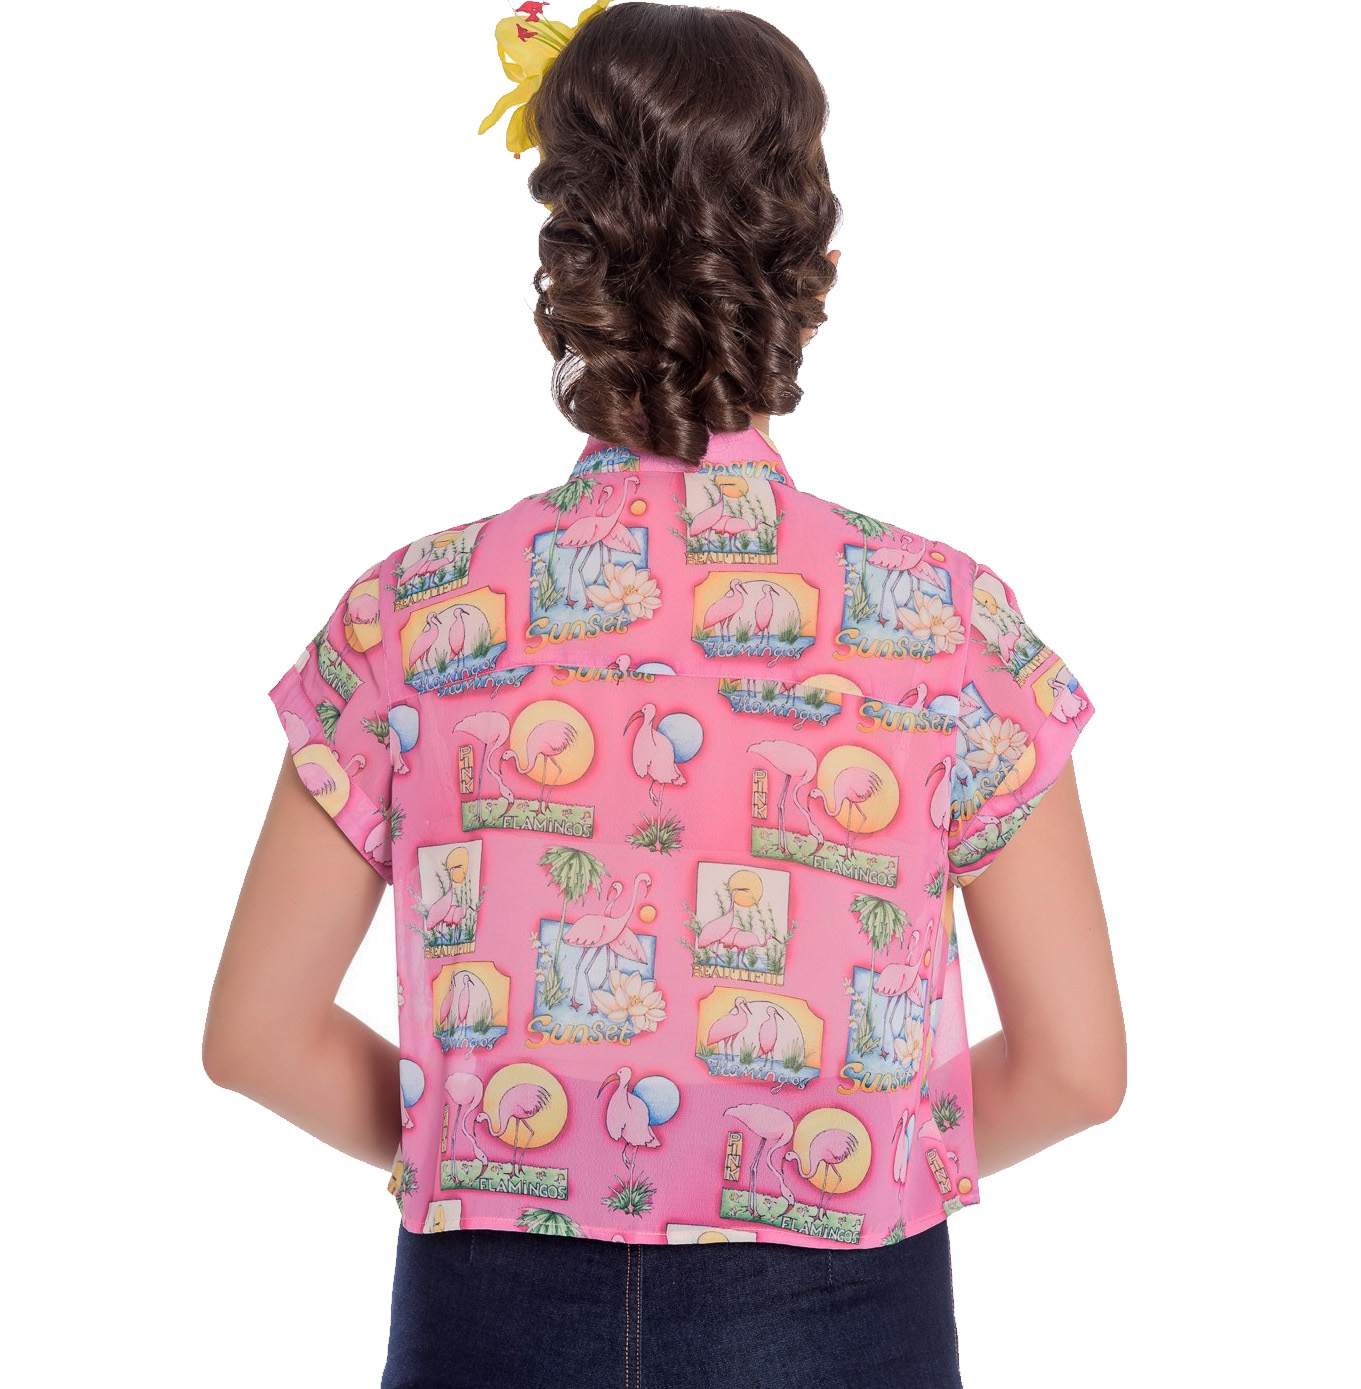 thumbnail 28 - Hell Bunny 50s Retro Top Pink Flamingo MAXINE Cropped Blouse Shirt All Sizes